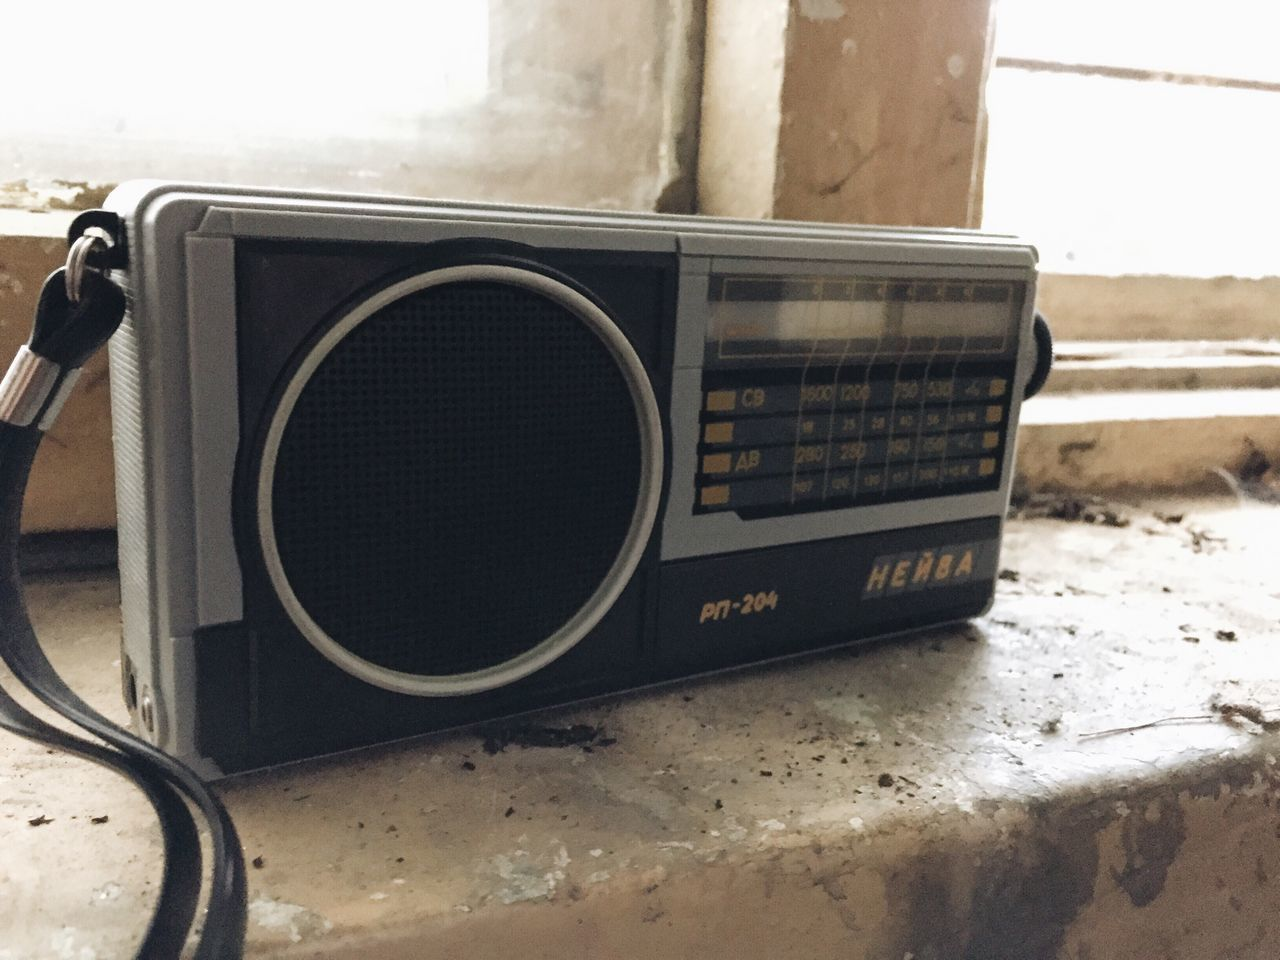 music, communication, technology, audio equipment, old-fashioned, close-up, no people, speaker, stereo, arts culture and entertainment, day, indoors, radio station